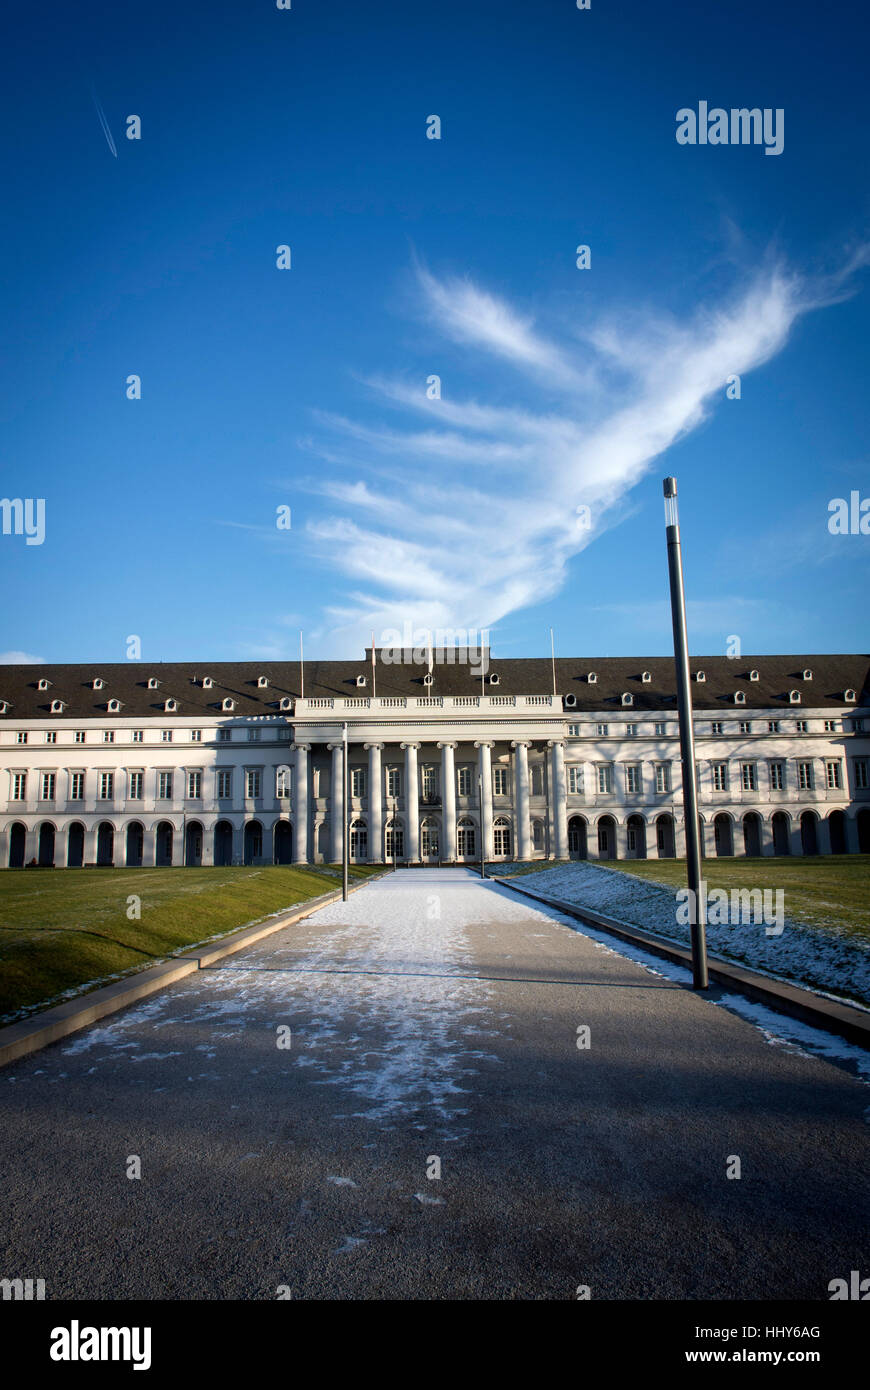 The main West facade of the Electoral Palace in Koblenz, Germany Stock Photo